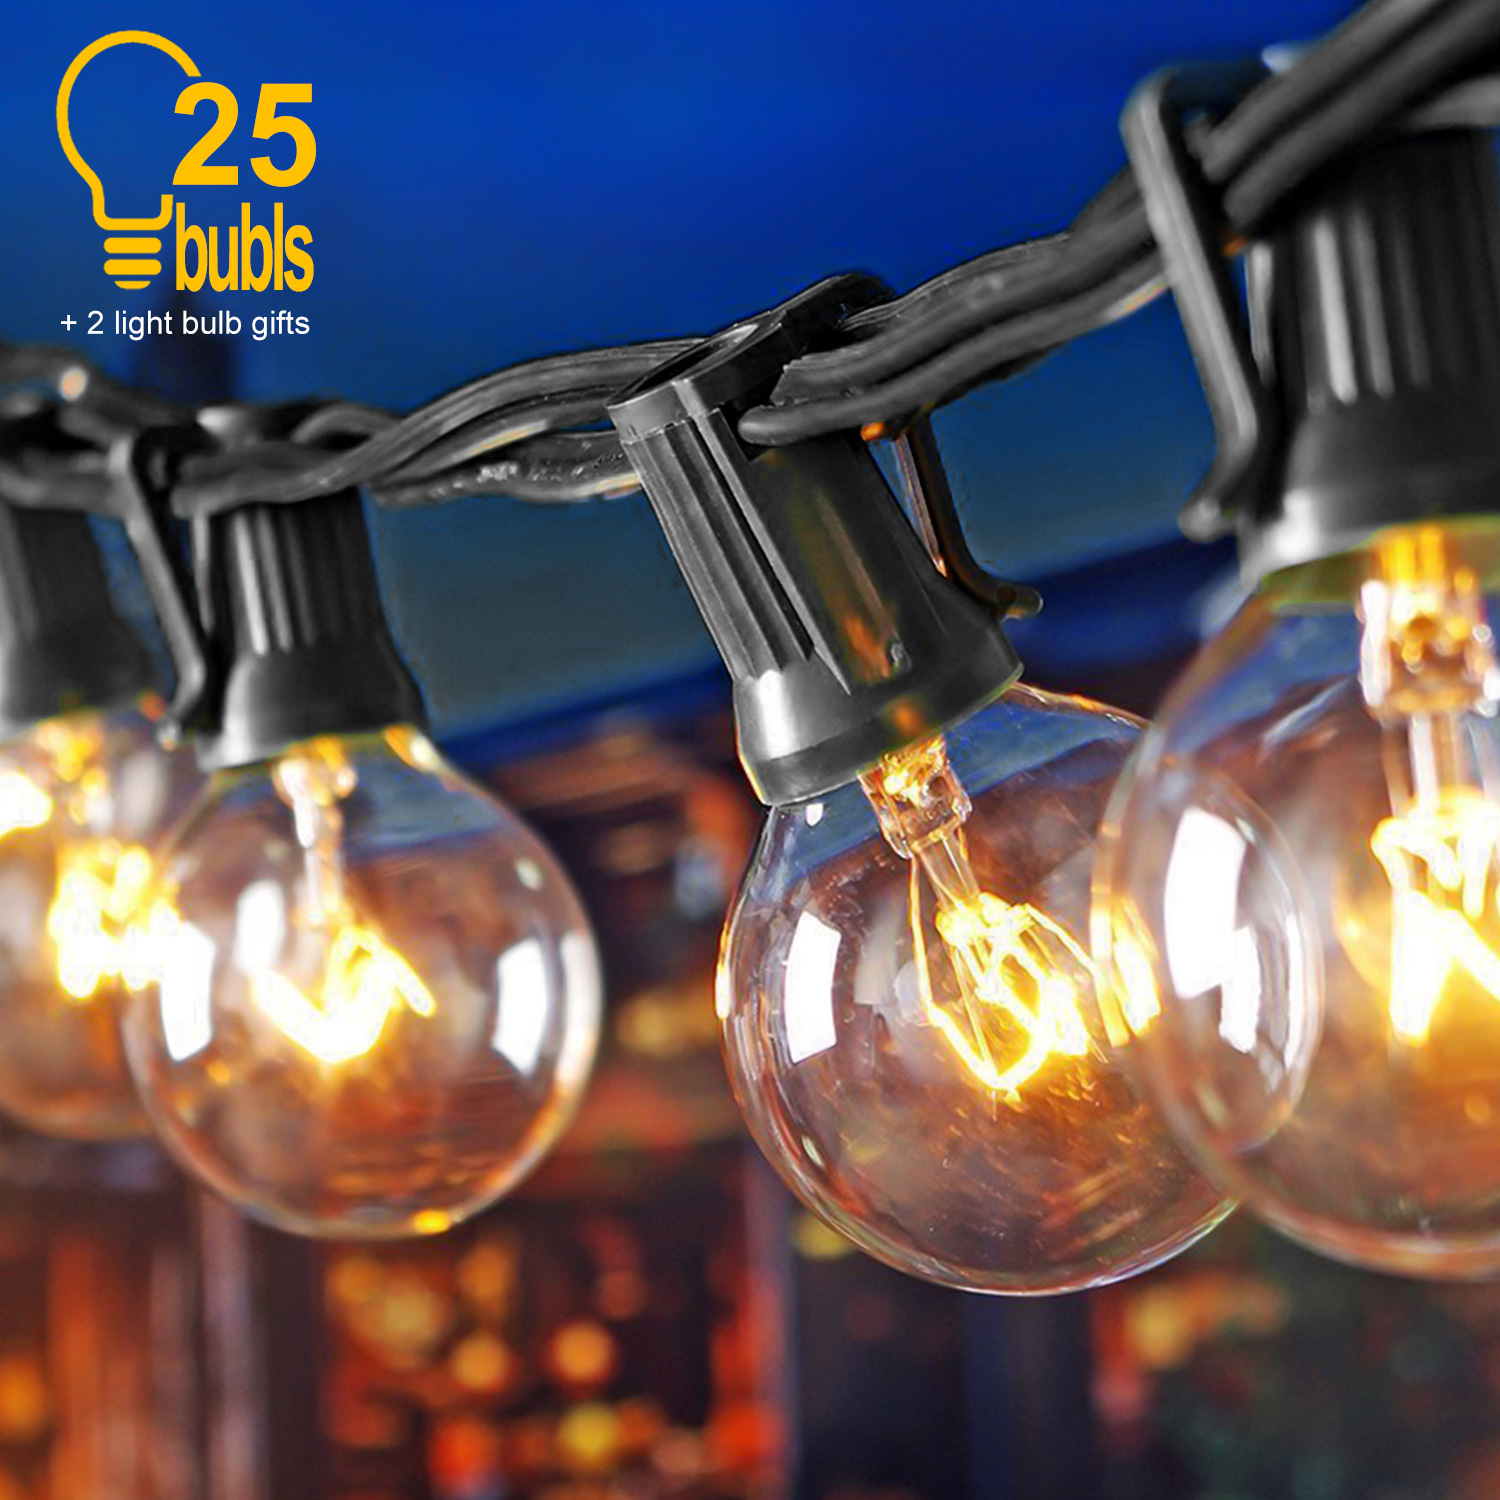 7 65m 10 Led String Bulbs Retro Vintage Lamp Fairy Festoon Holiday String Lights Wedding Christmas Party Garden Home Decor